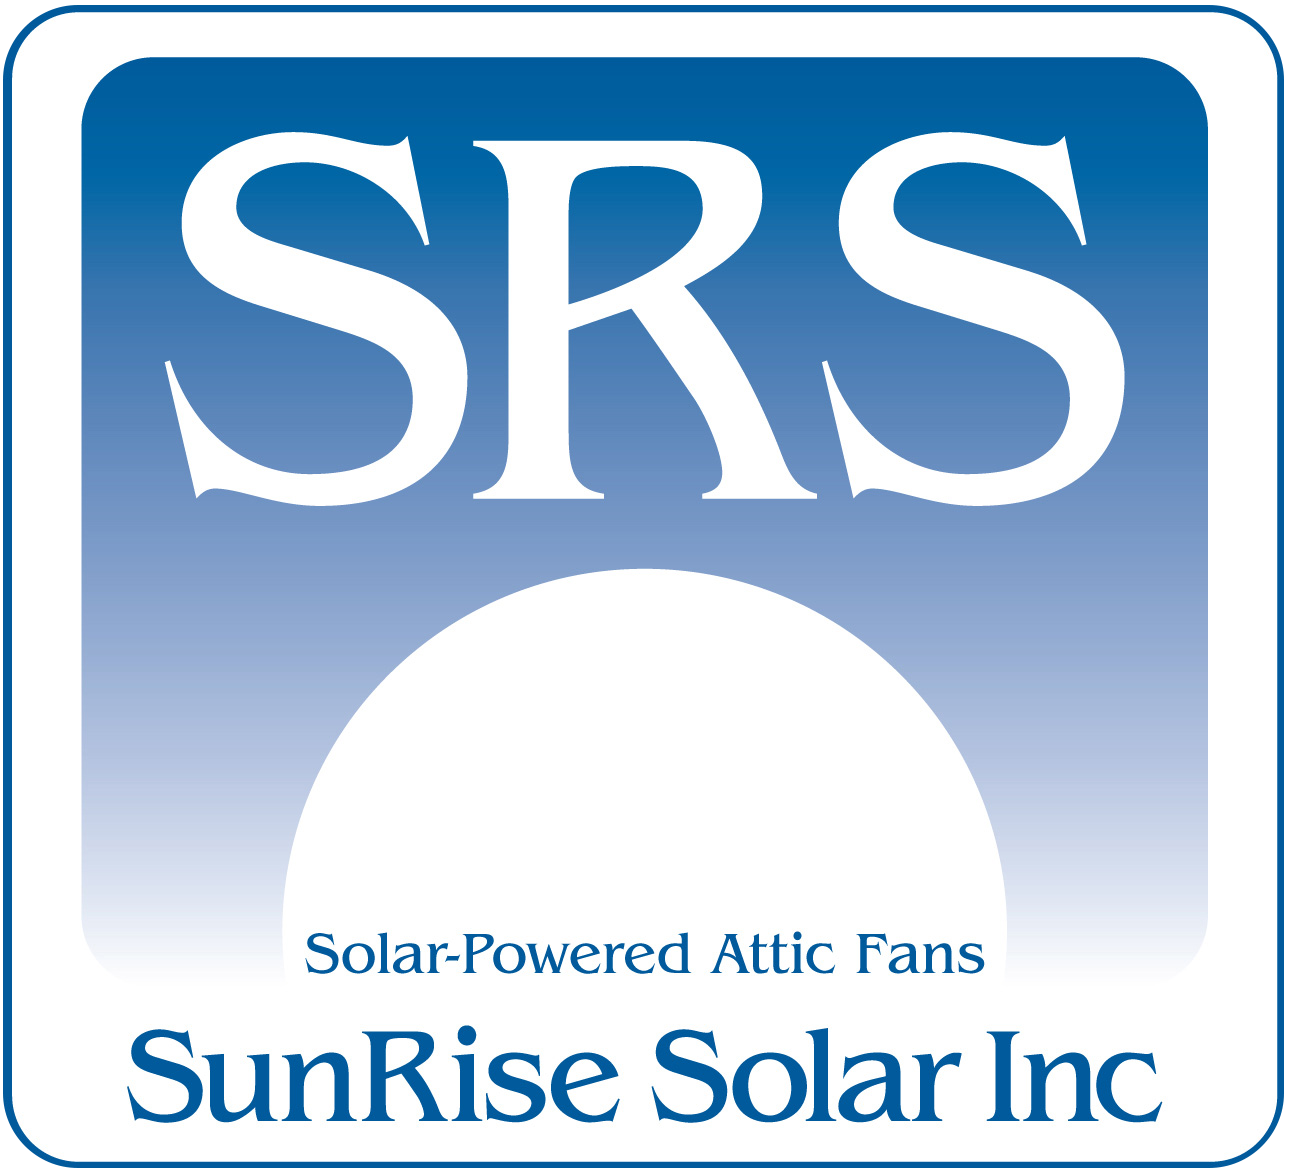 sunrise solar attic fans logo